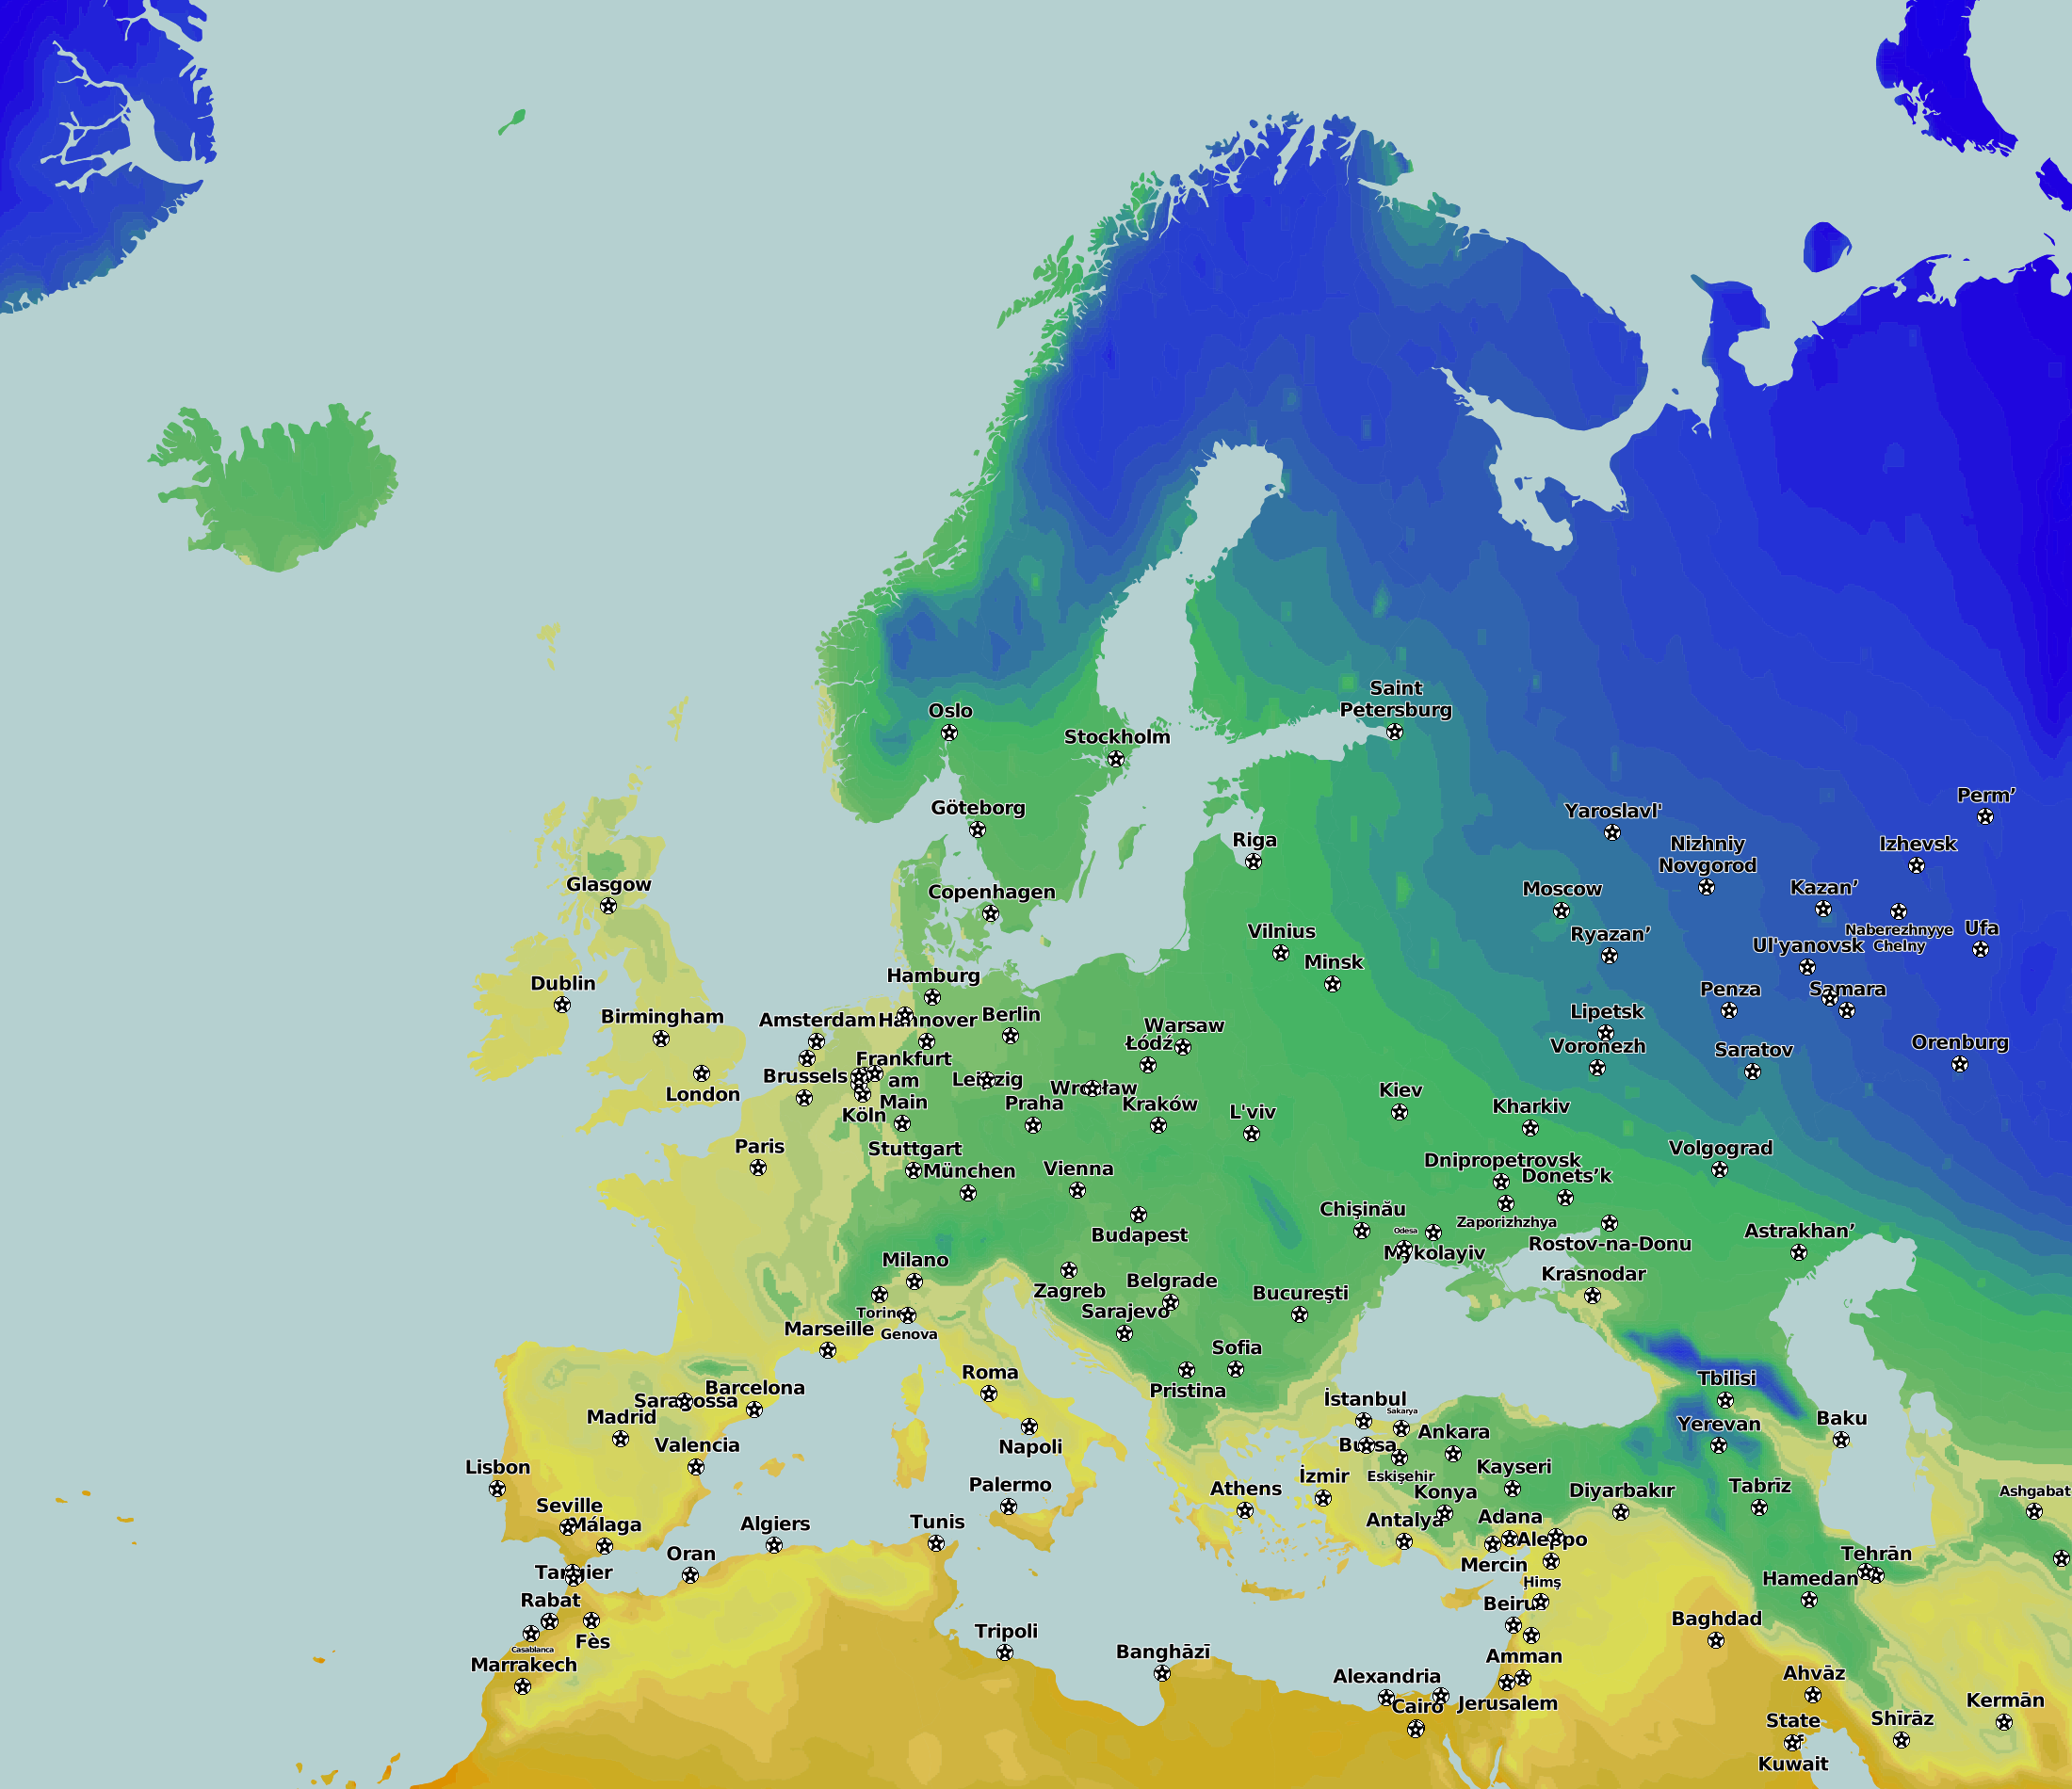 Average Rainfall Map Europe.Thematic Maps And City Maps Climate